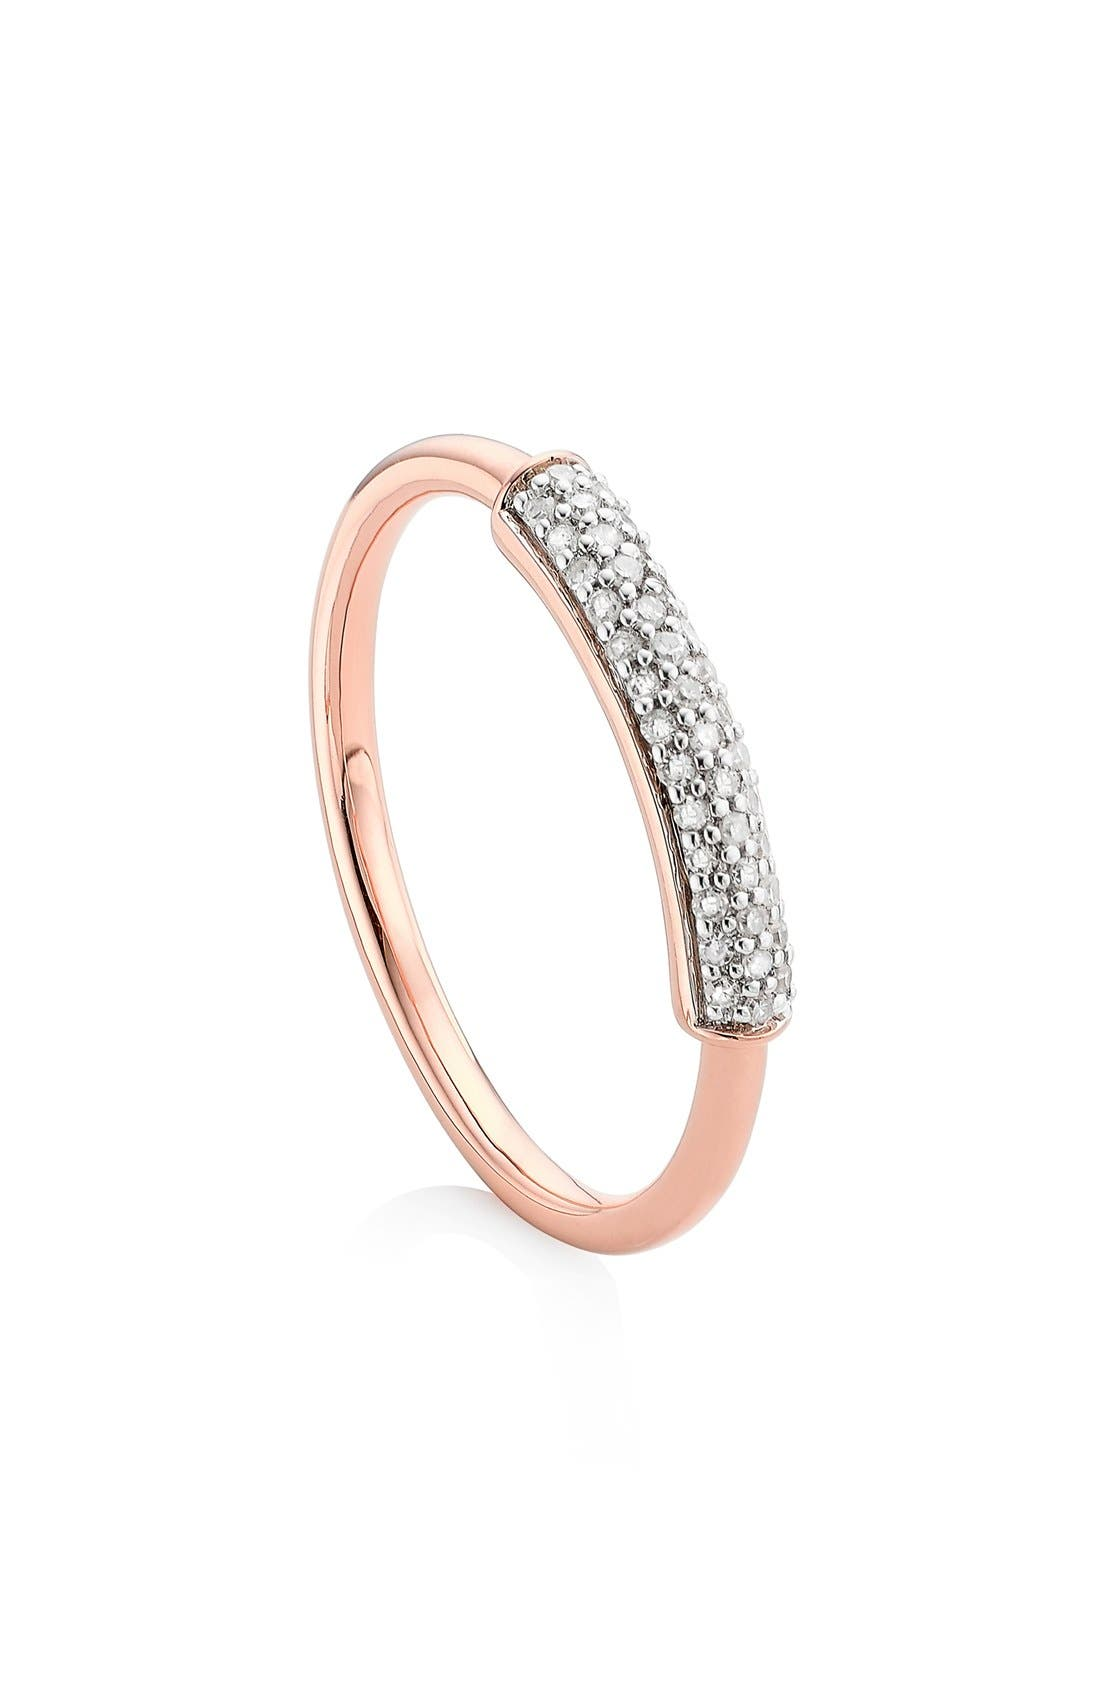 Monica Vinader 'Stellar' Diamond Band Ring